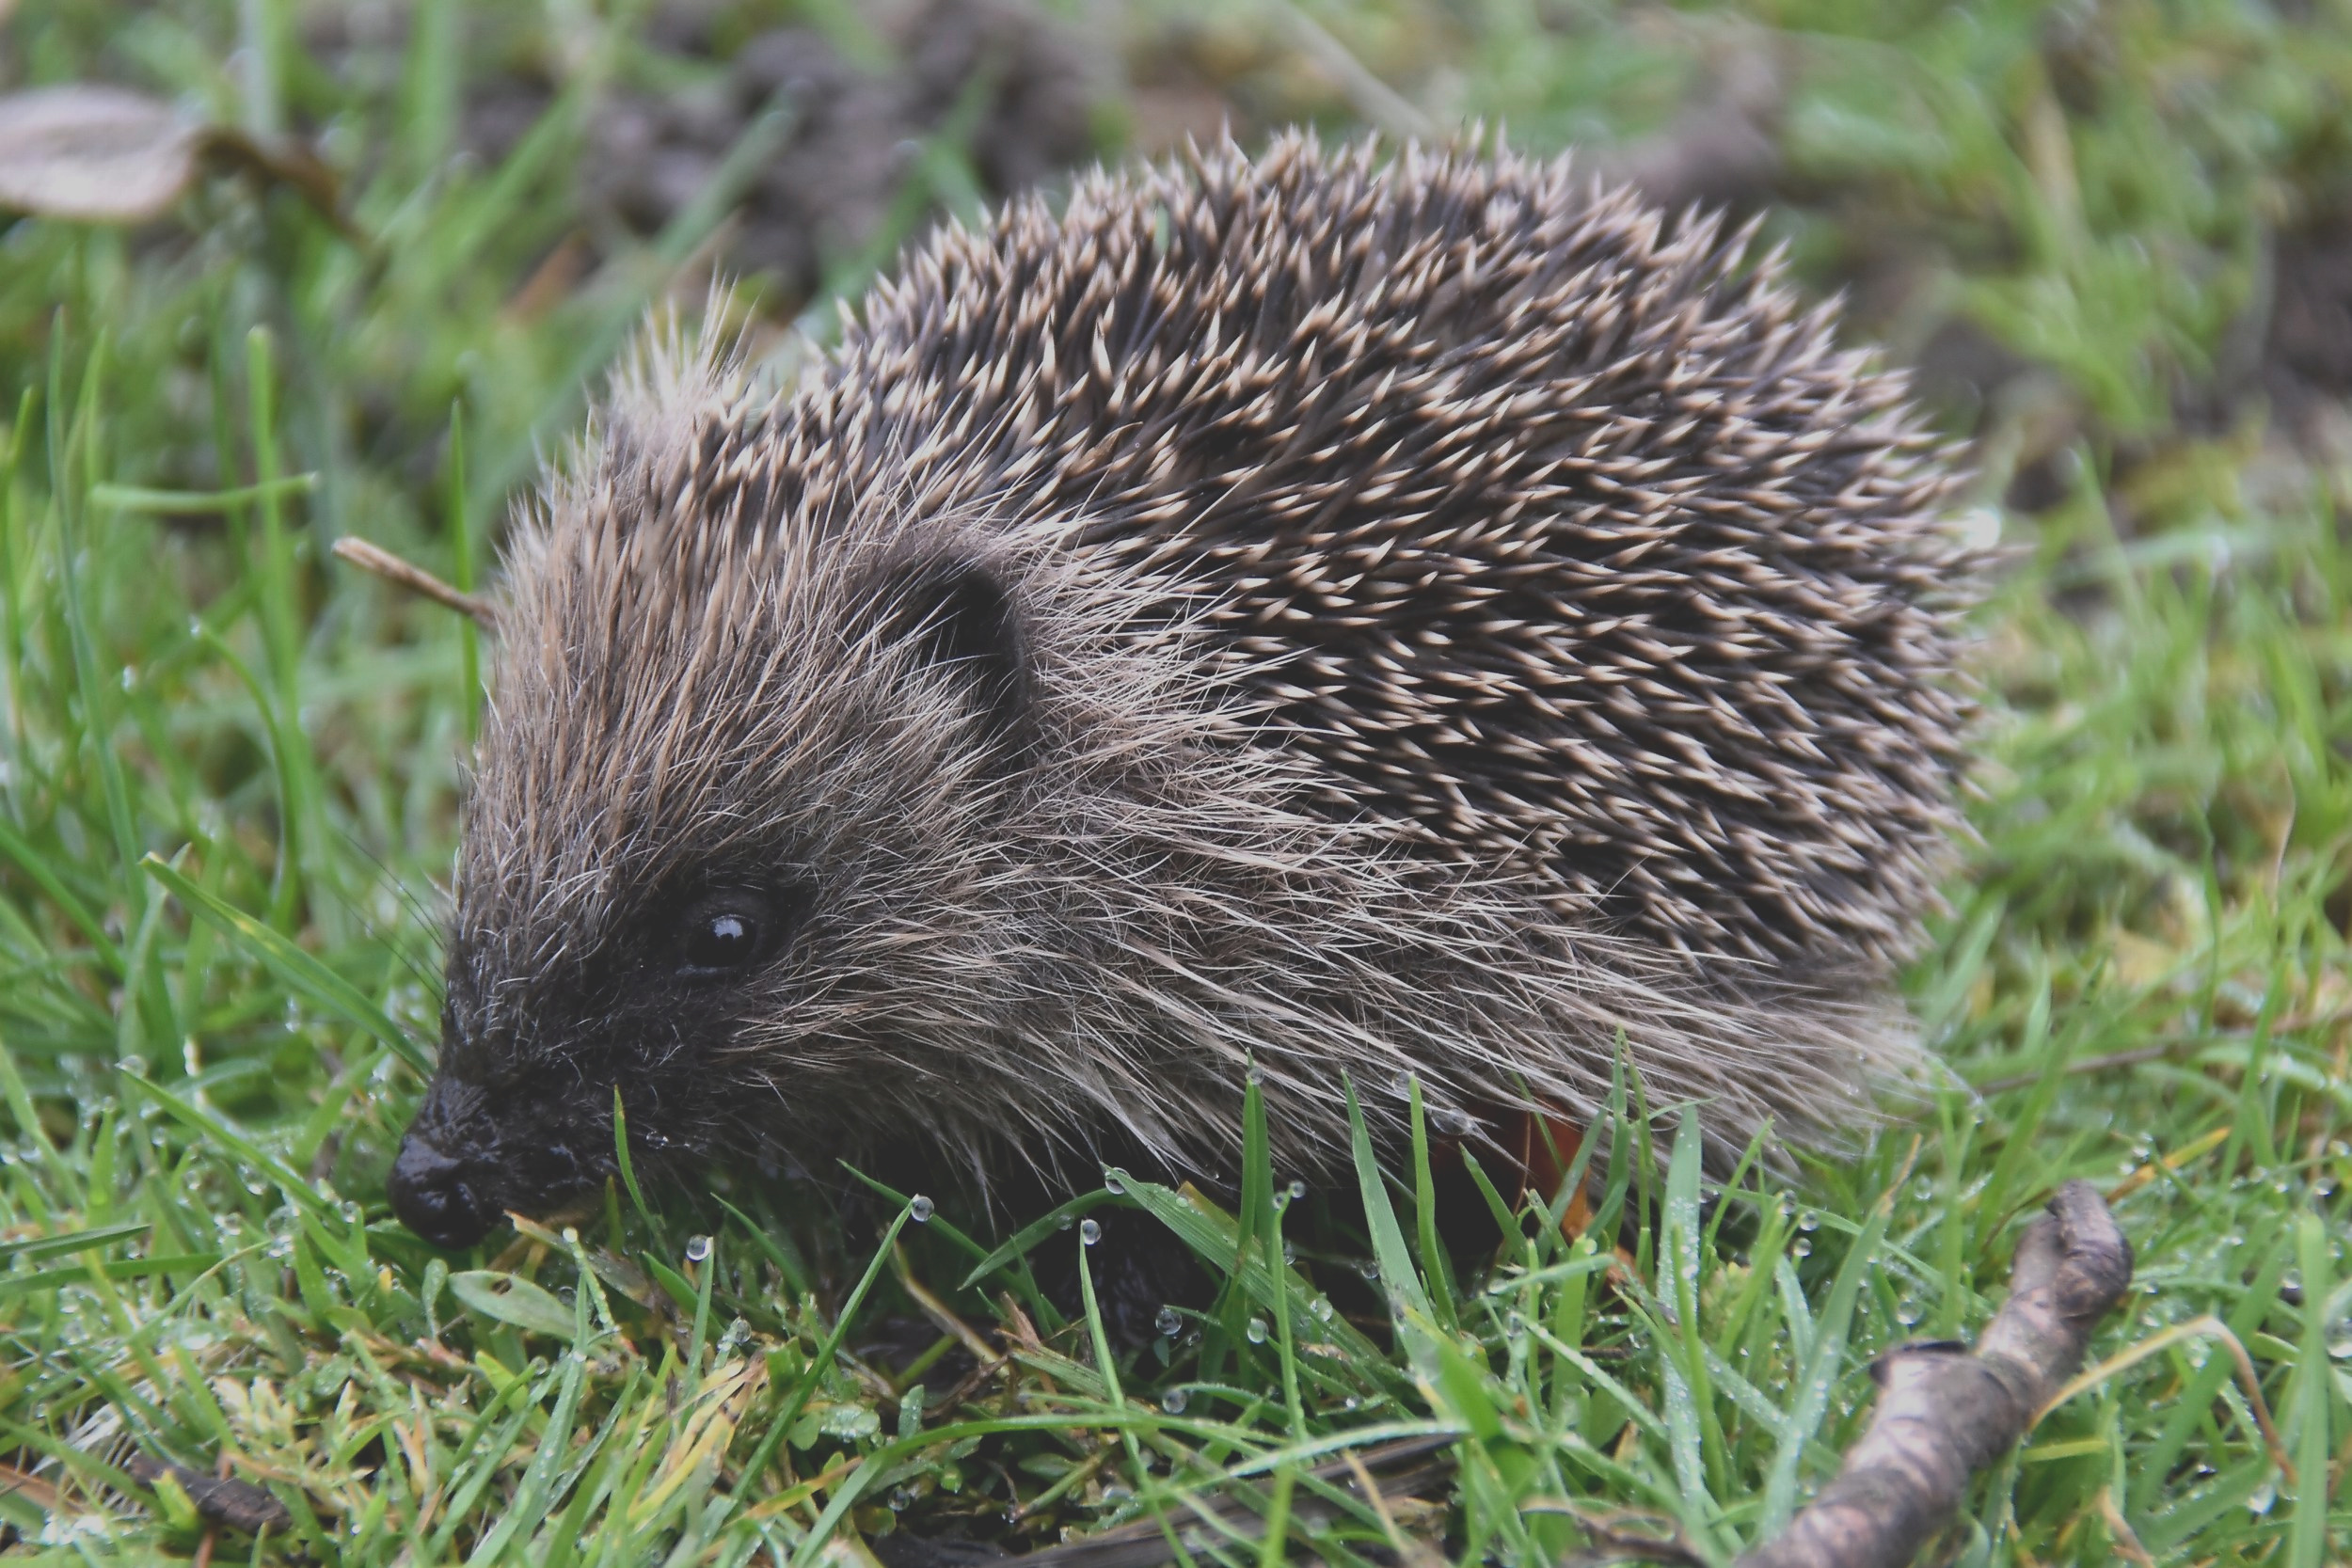 Leave food for hedgehogs